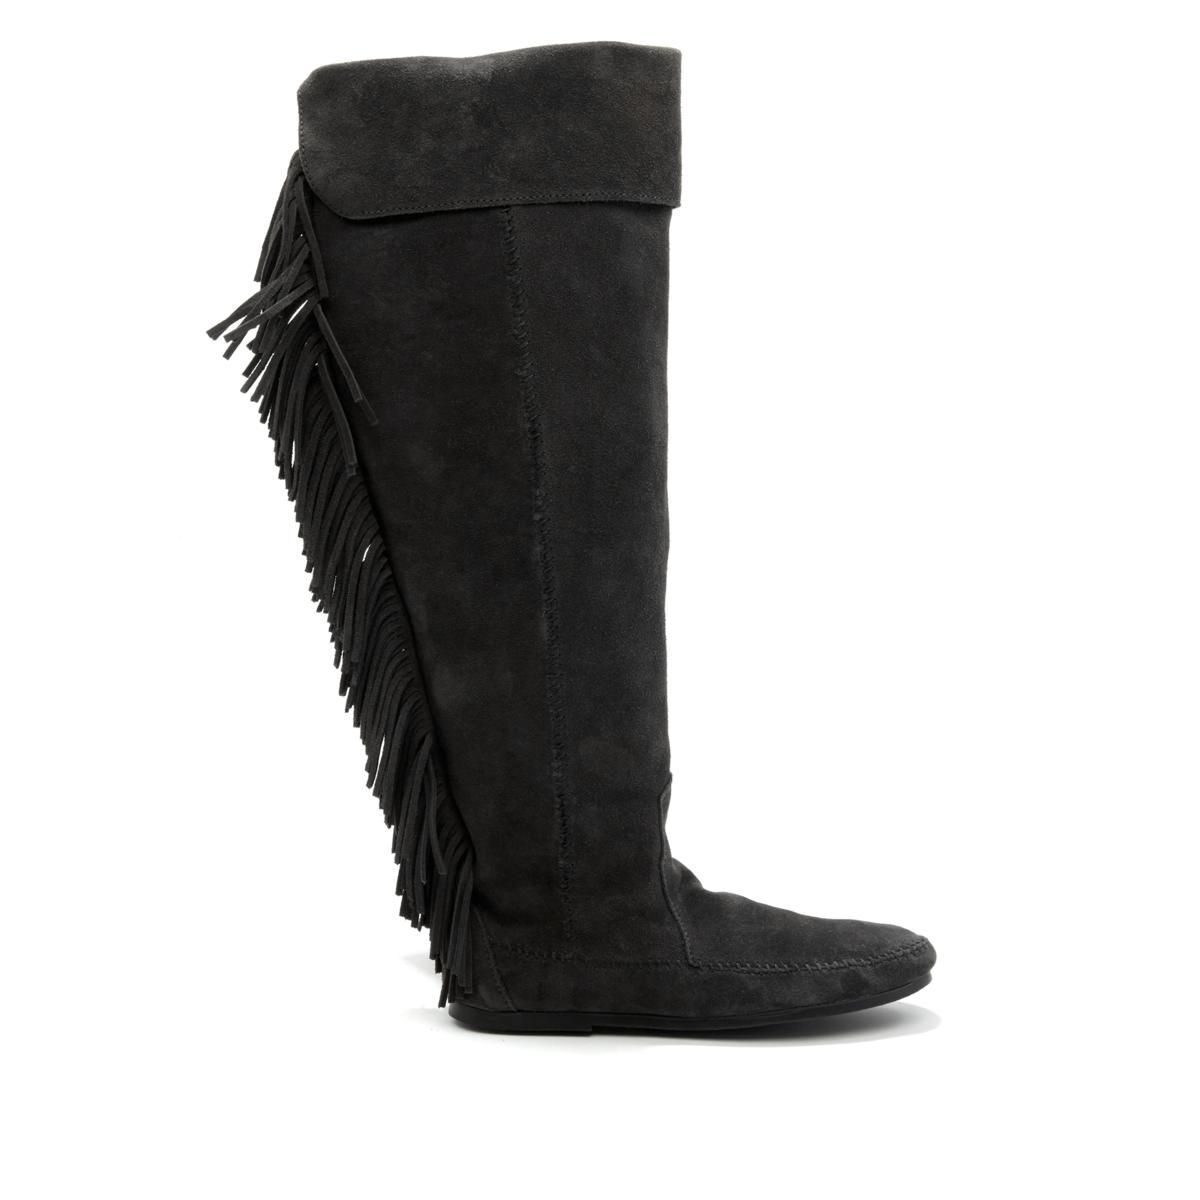 Minnetonka Over-the-Knee Suede Fringe Boot 567-759 by